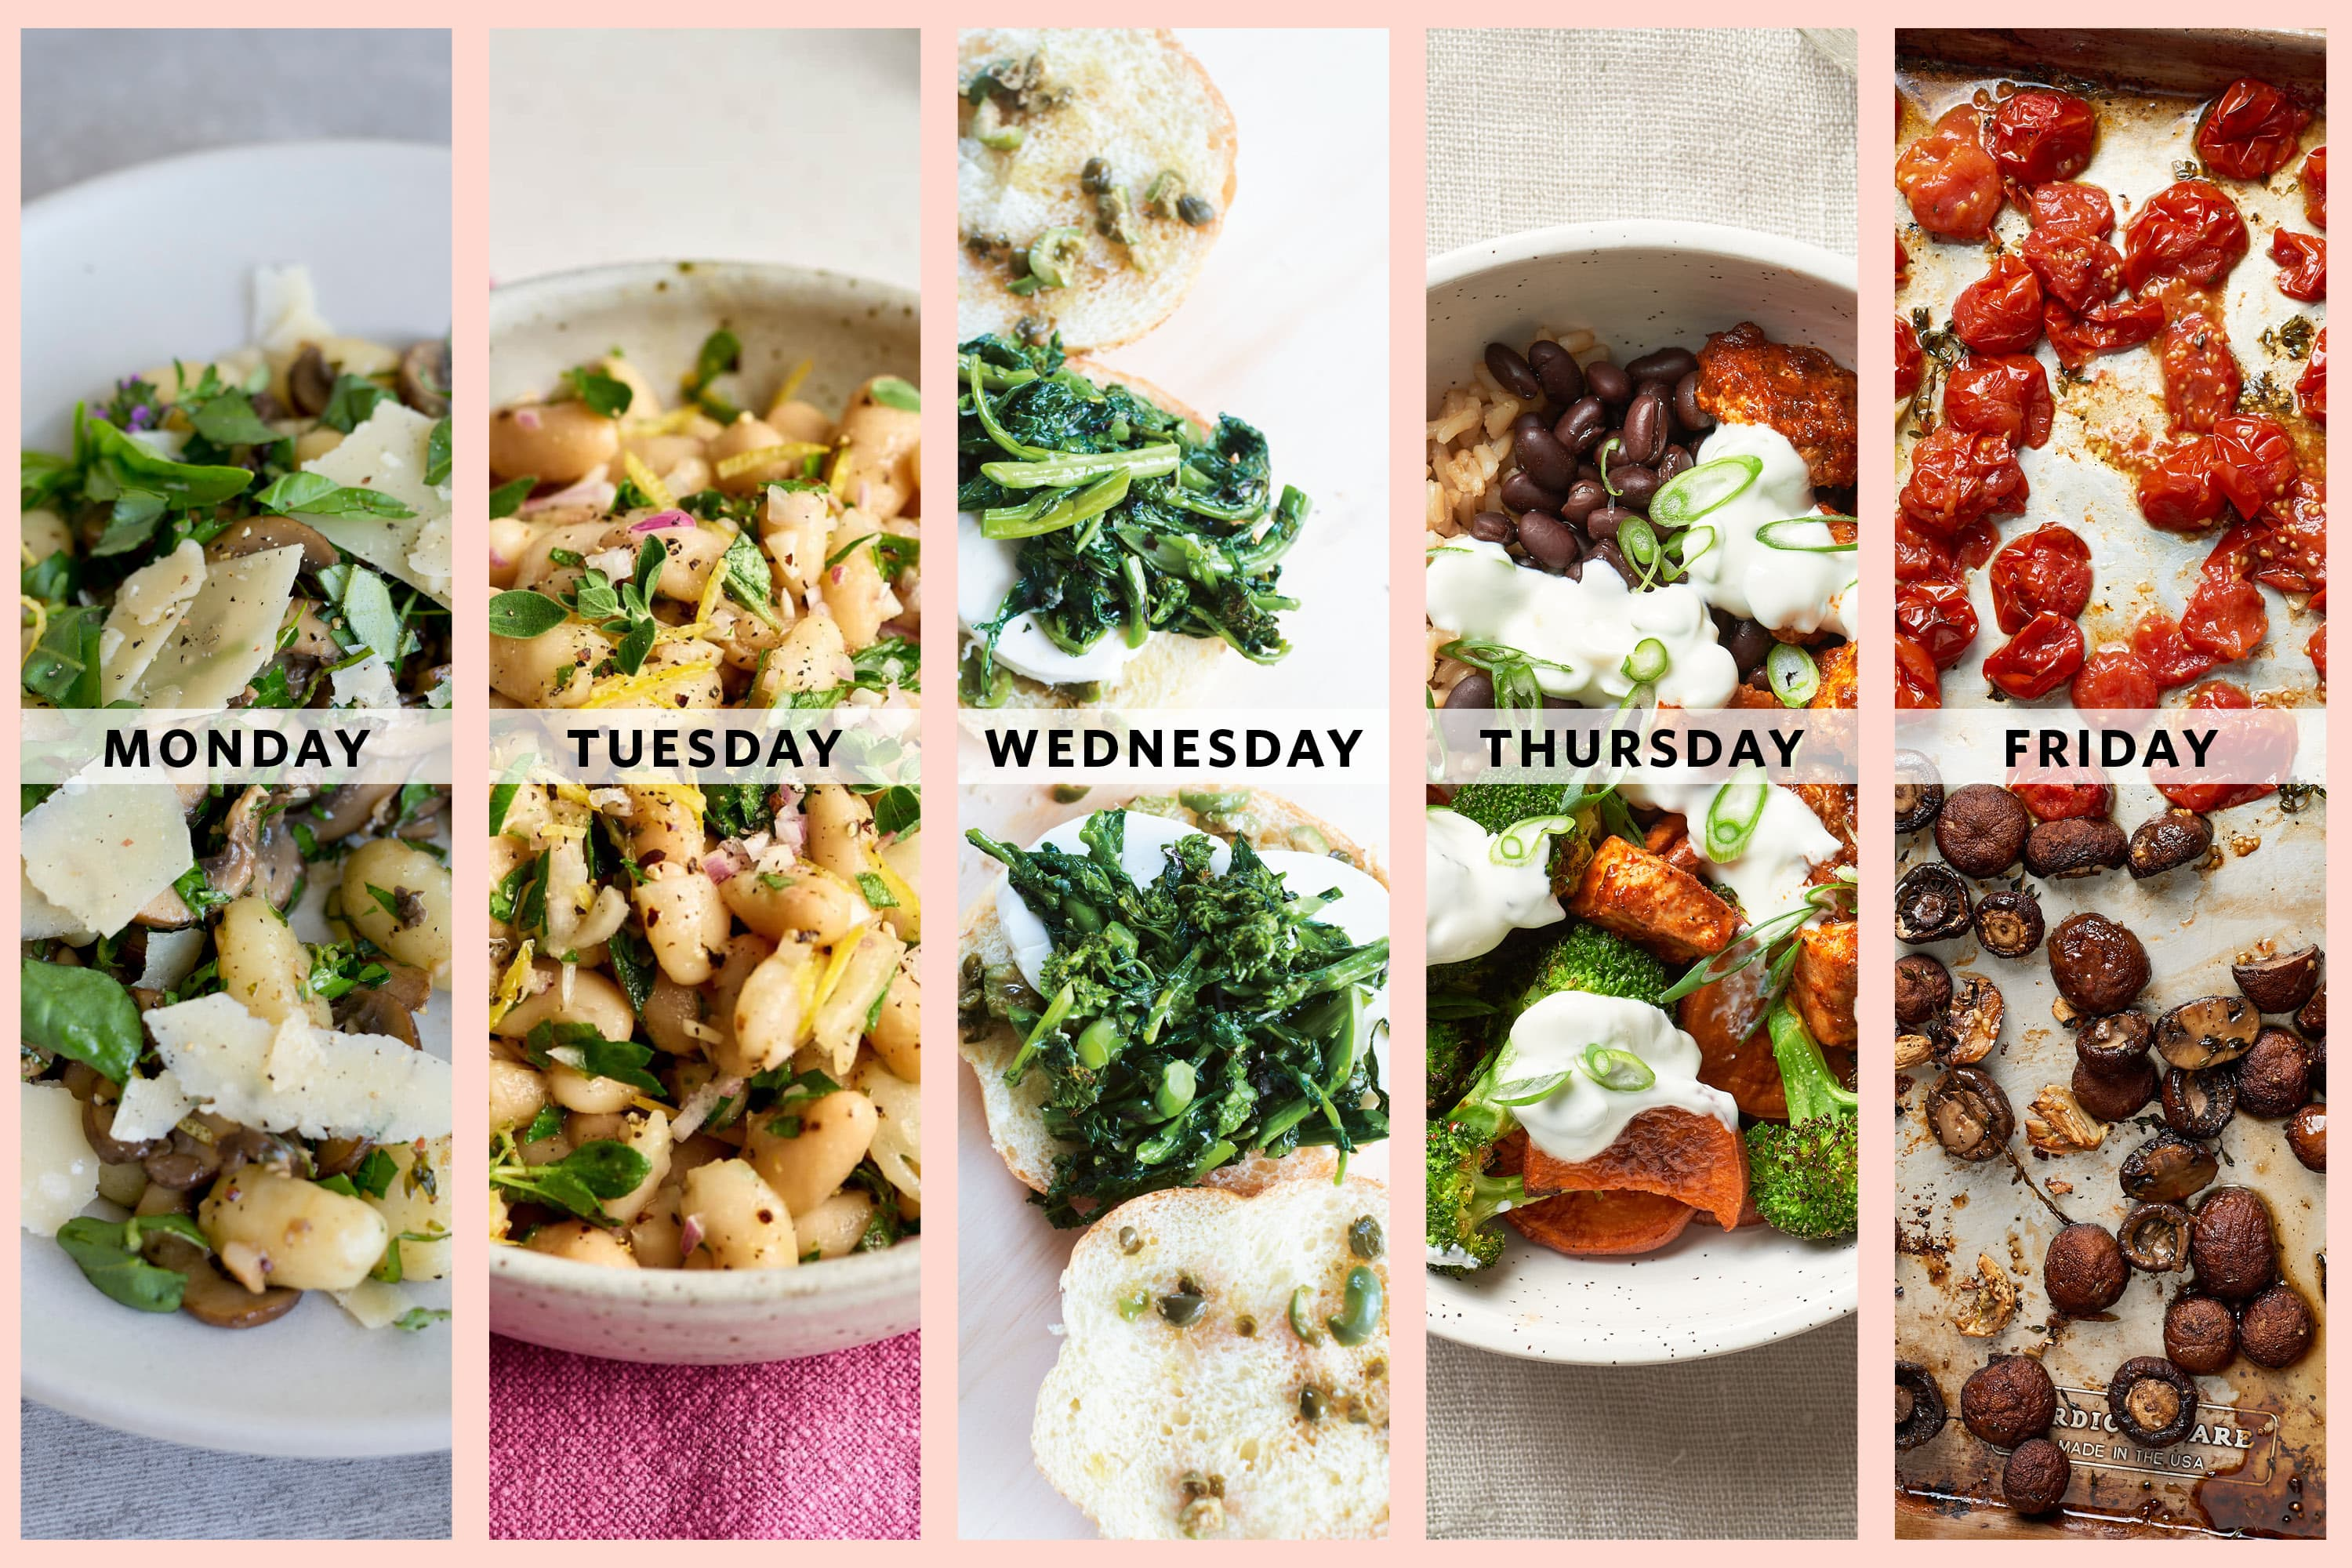 Next Week's Meal Plan: 5 Vegetarian Dinners for One